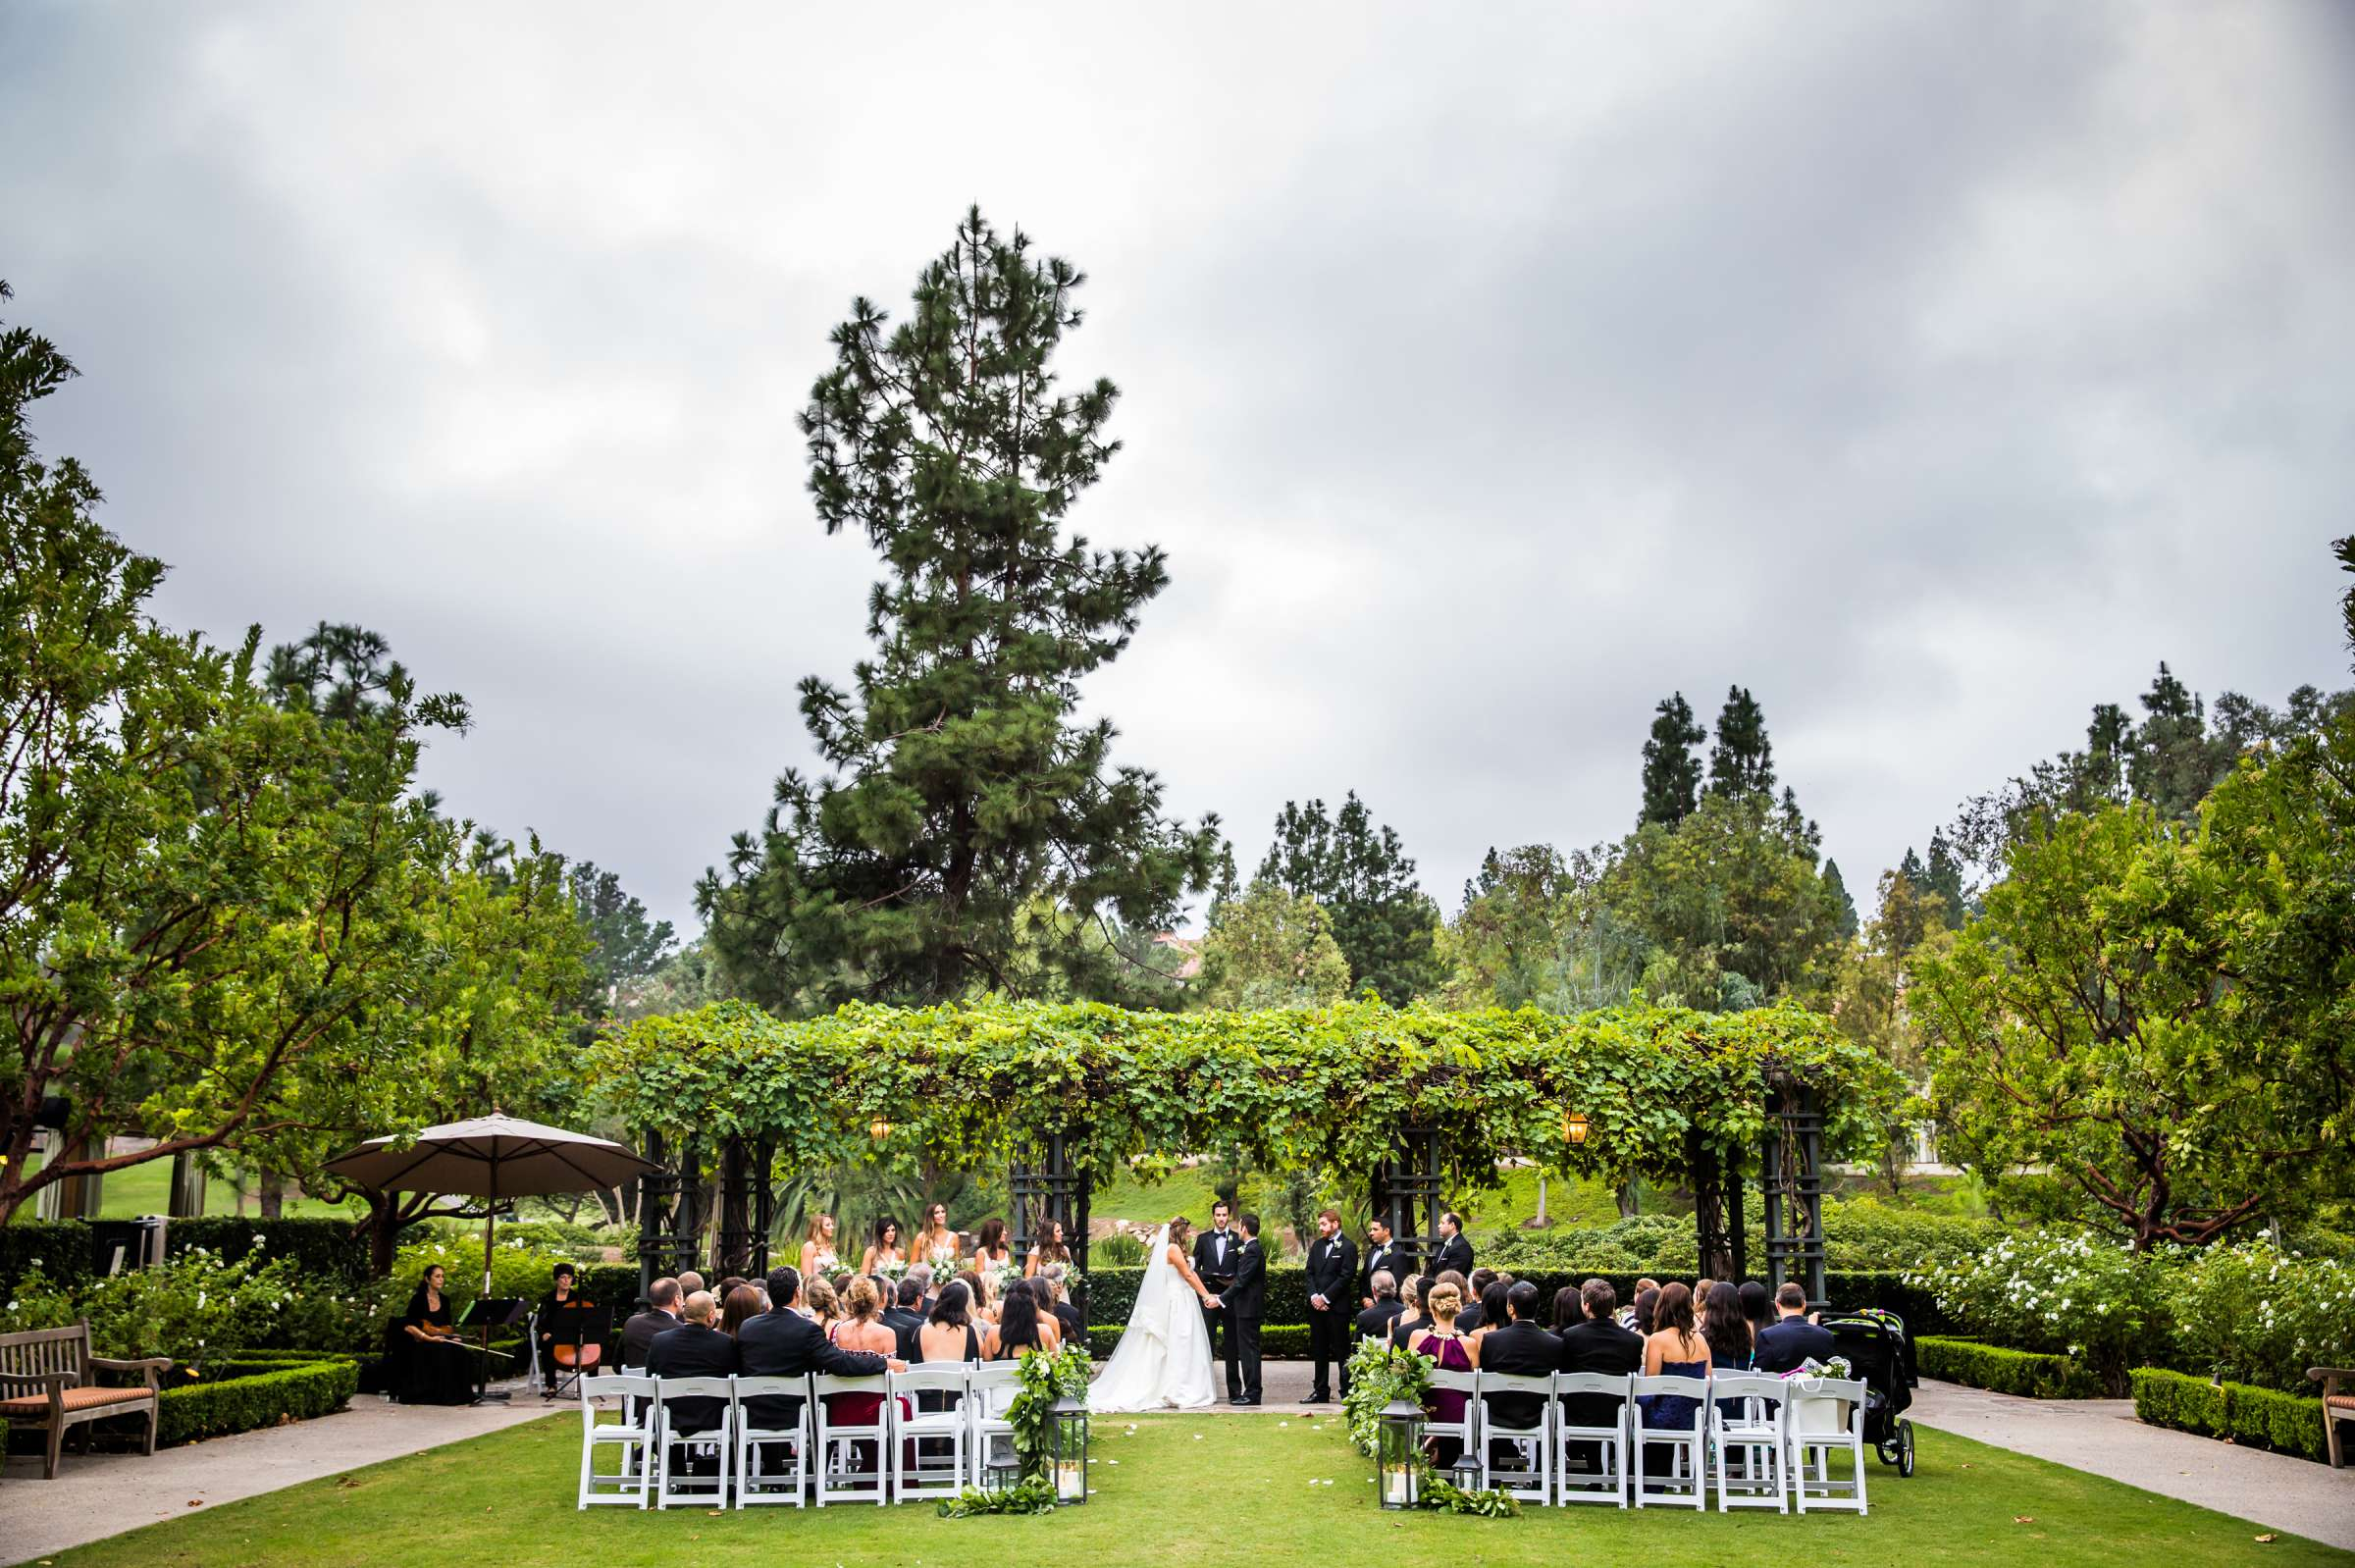 Rancho Bernardo Inn Wedding coordinated by Très Chic Events, Stefania and Nicholas Wedding Photo #42 by True Photography